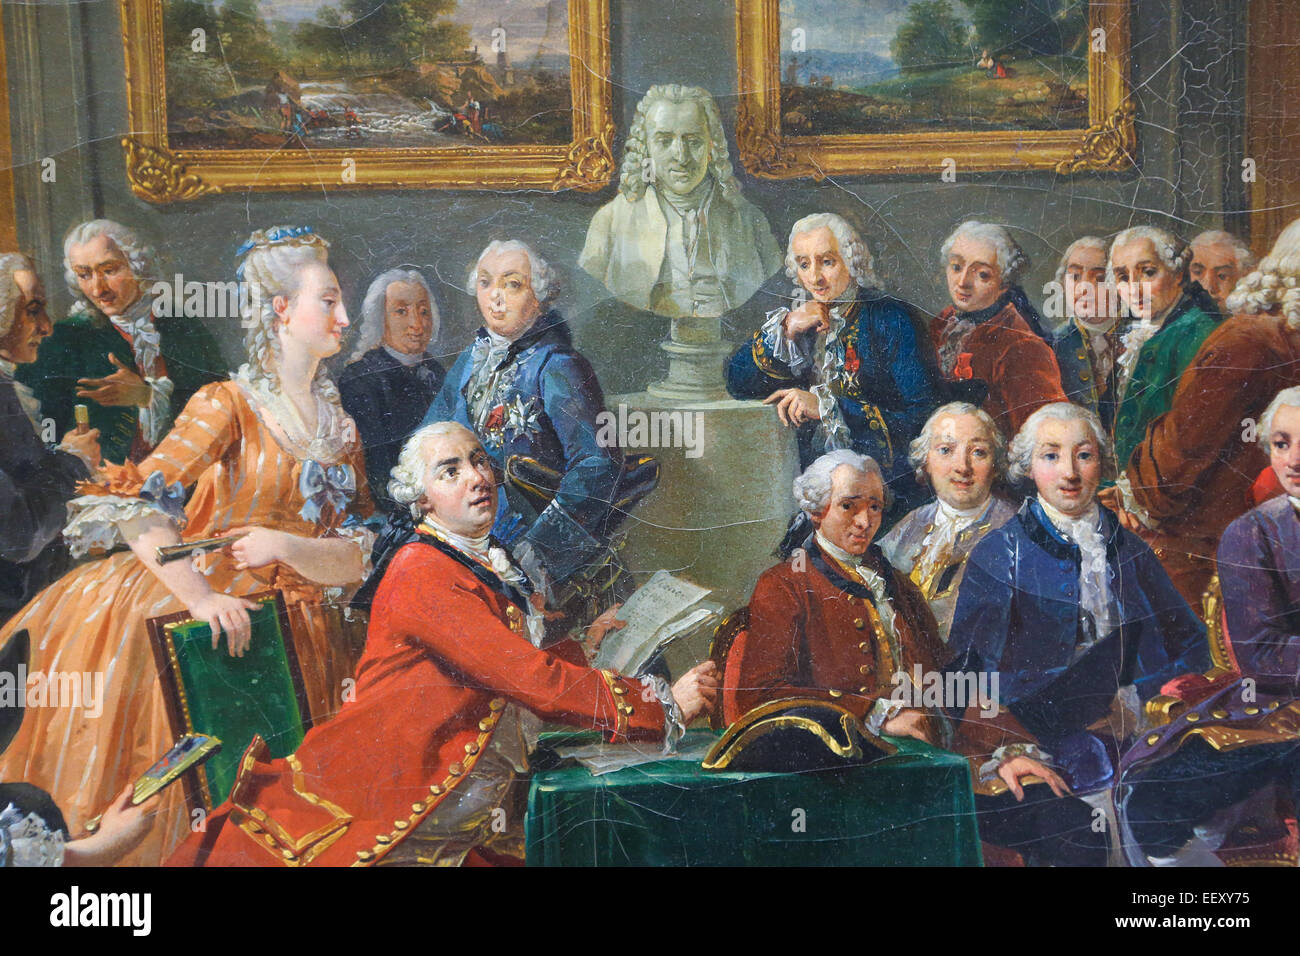 Painting depicting the reading of the tragedy l'Orphelin de la China by Voltaire in the salon of Madame Geoffrin - Stock Image